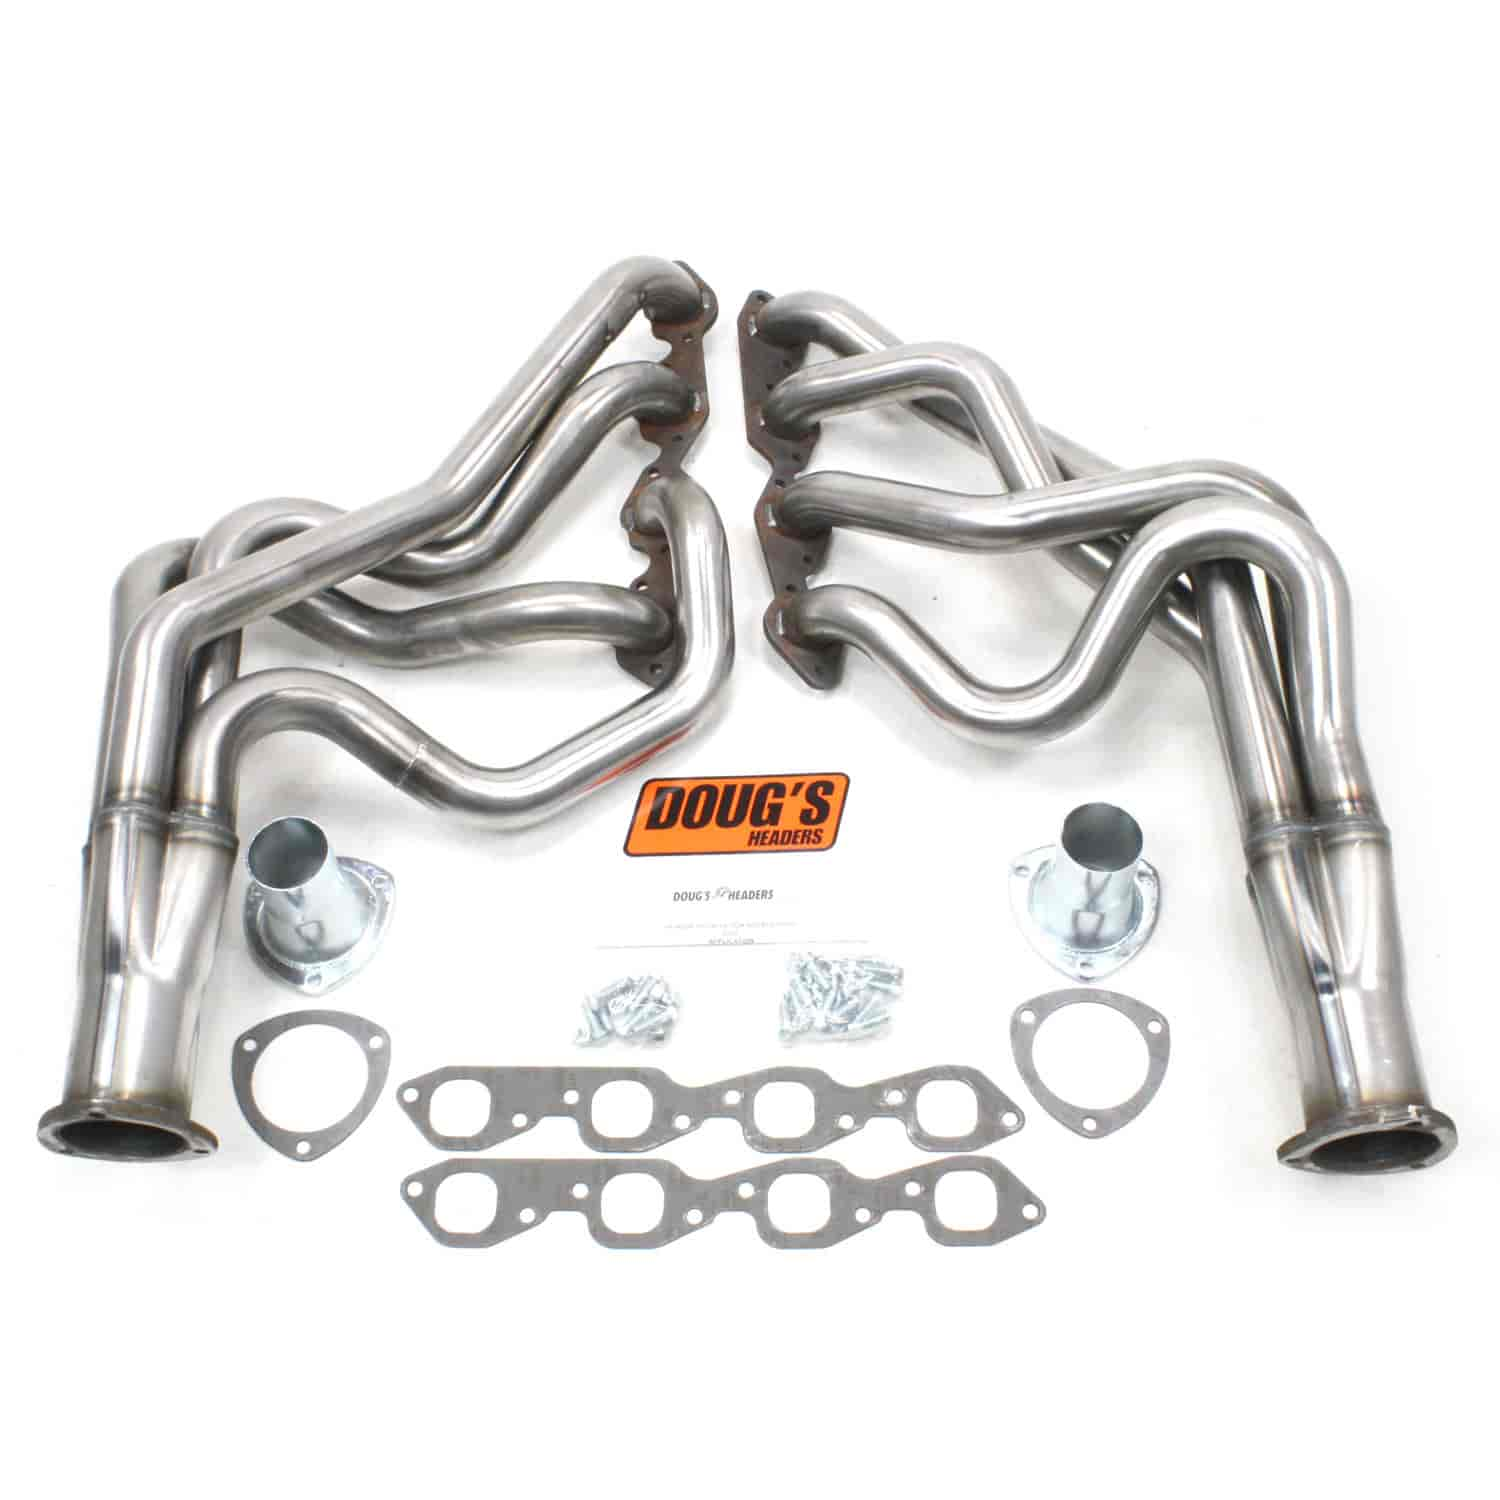 Doug's Headers D320-R